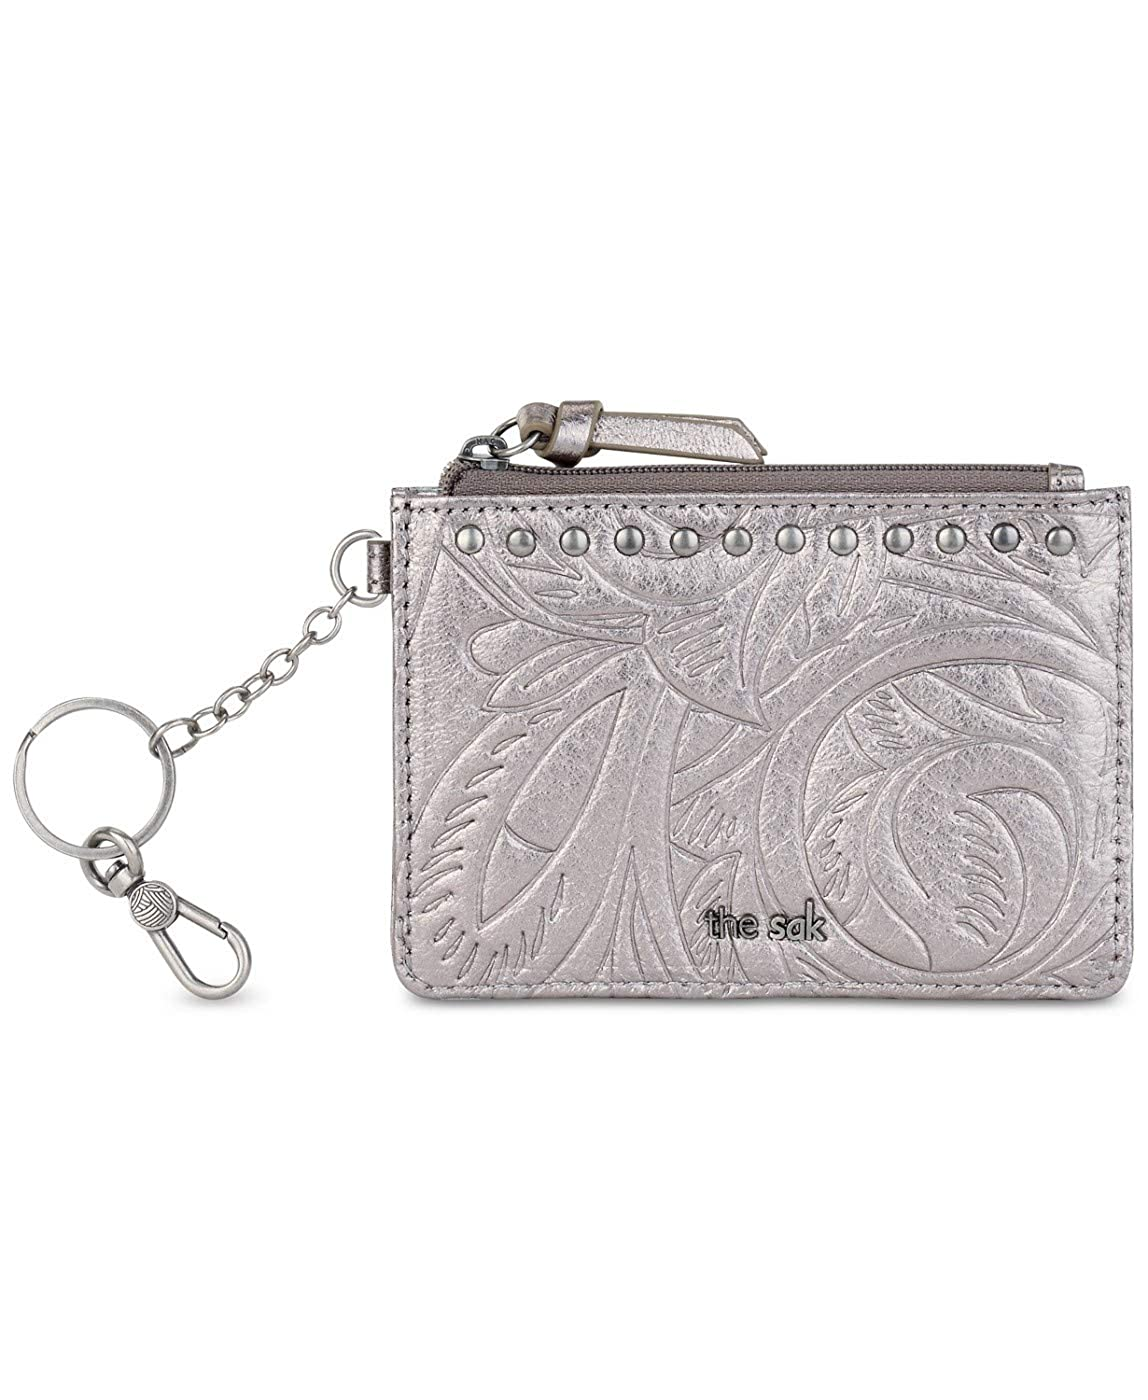 The Sak Silverlake - Monedero, color plateado: Amazon.es ...